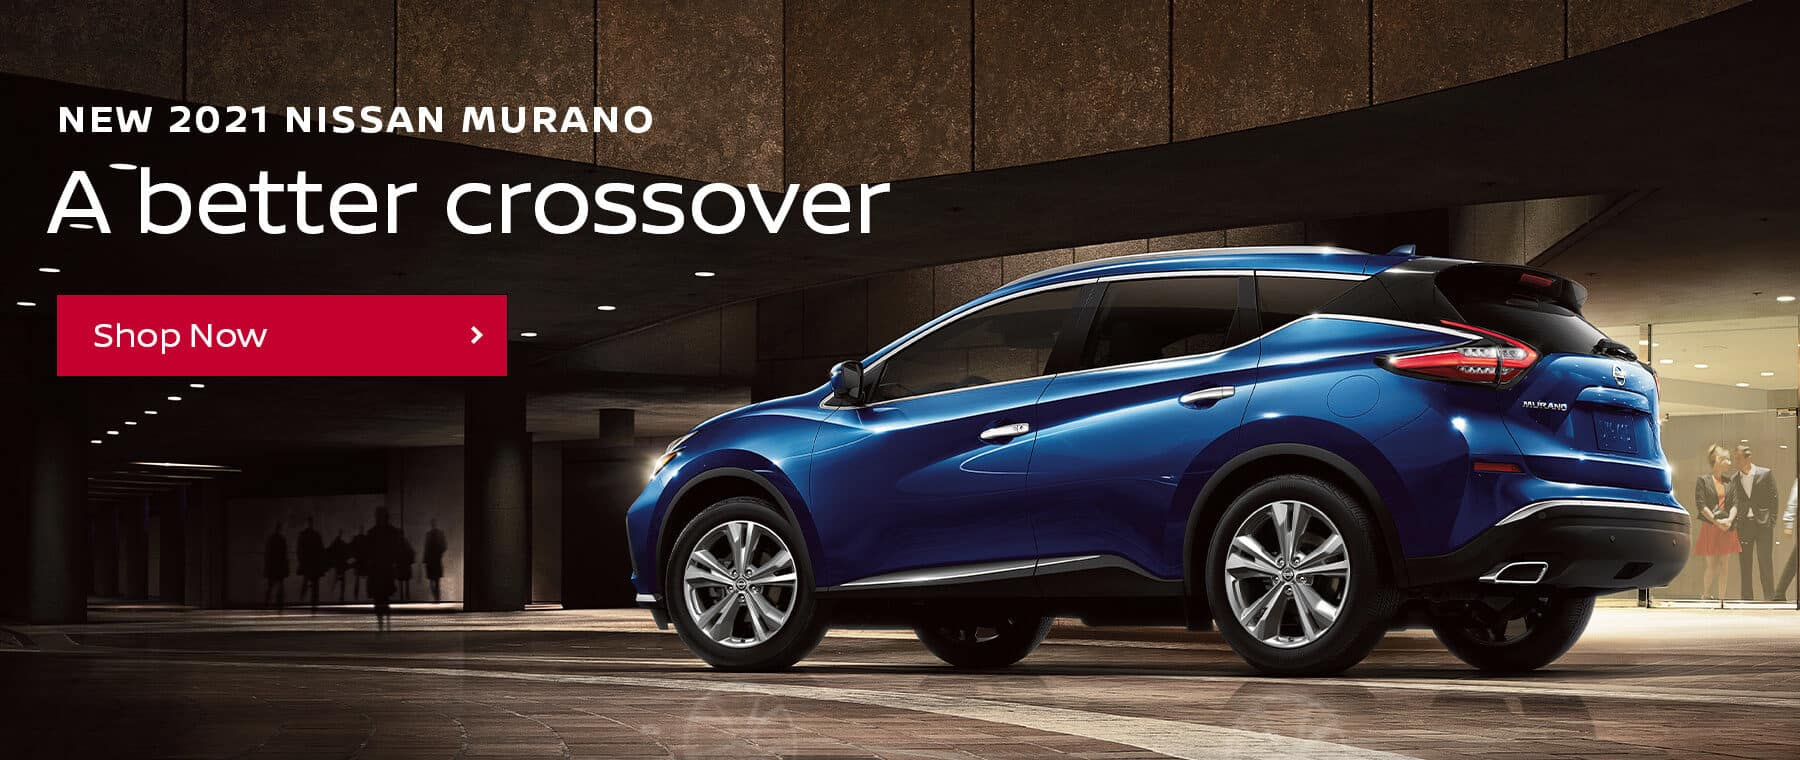 Drive A Better Crossover in The New Nissan Murano Near Clarksville, Indiana